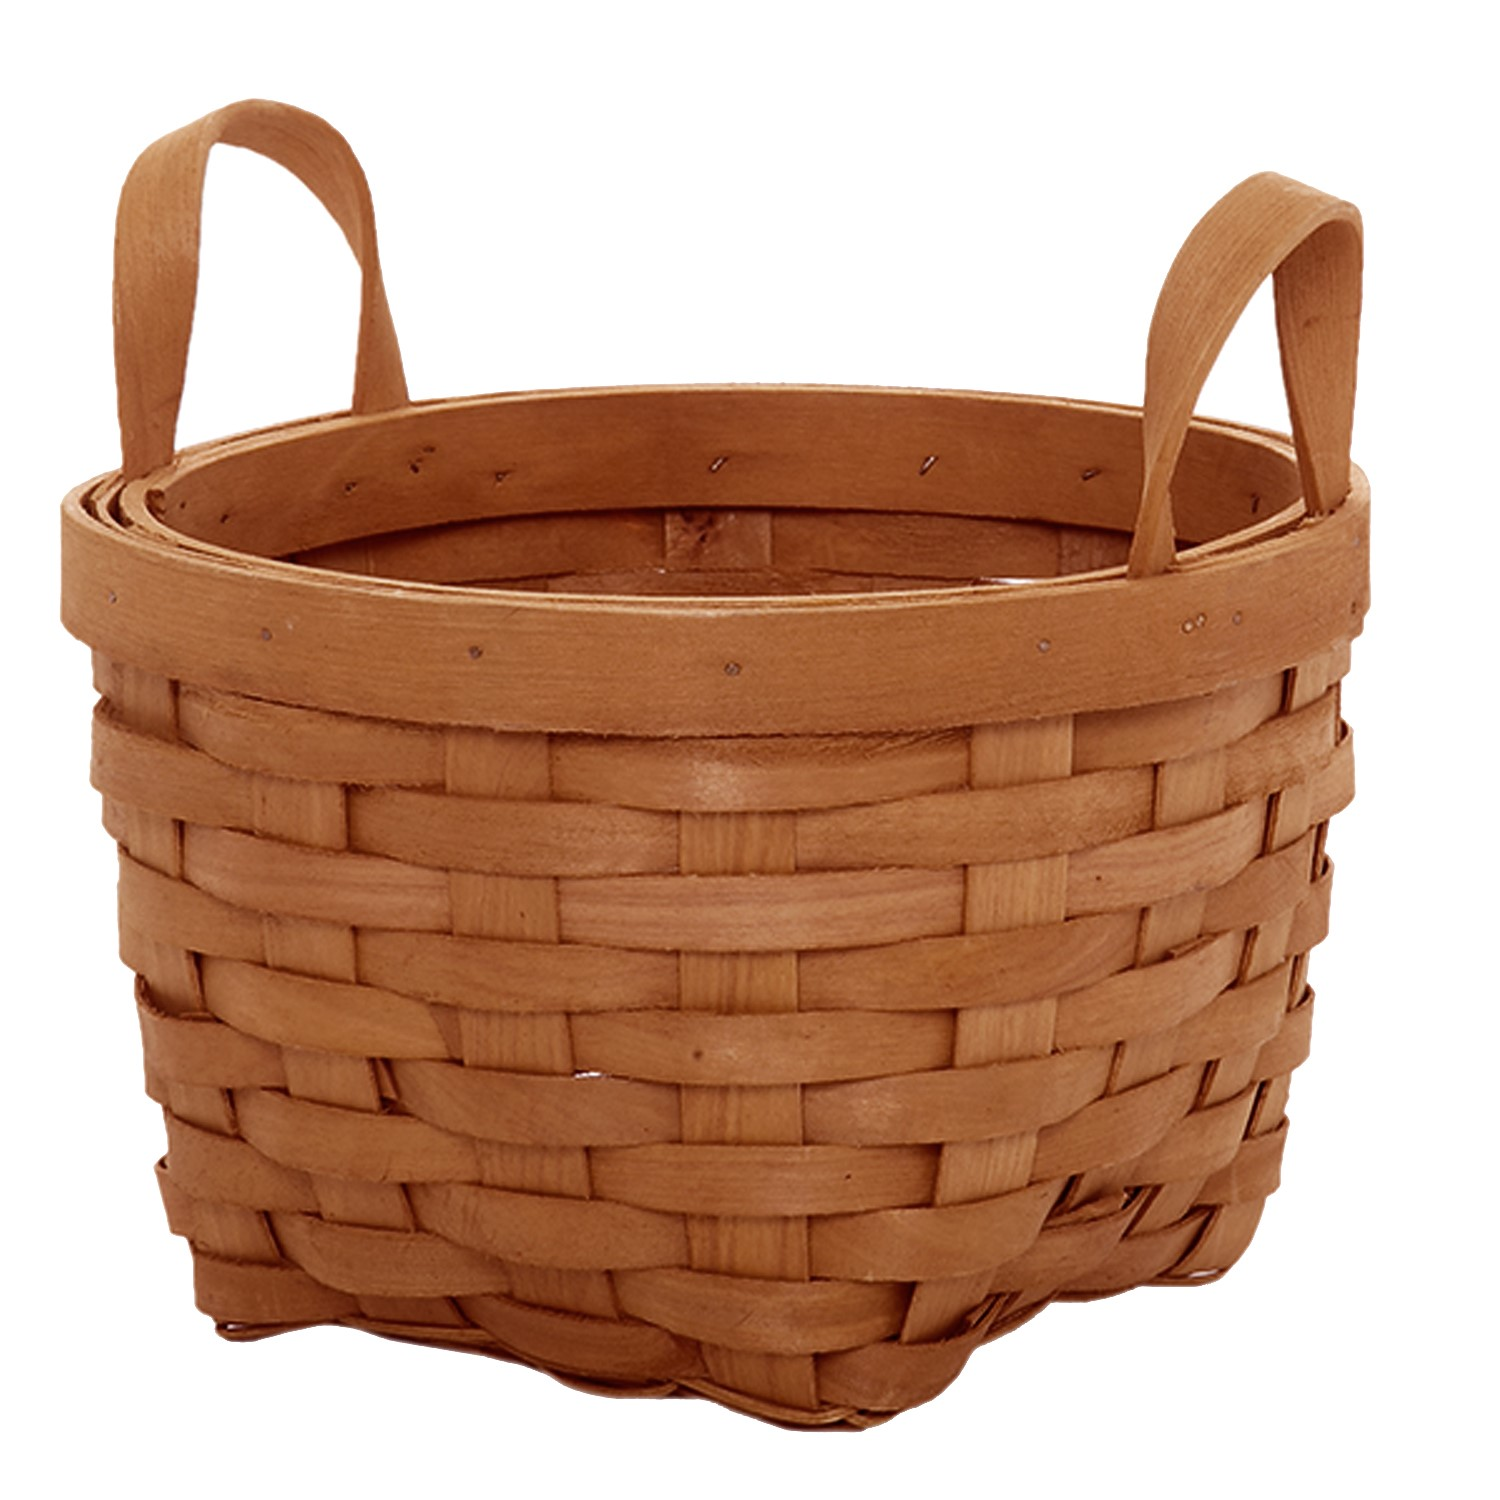 Classic Woodchip Weave Basket with Ear Handles - Small 8in